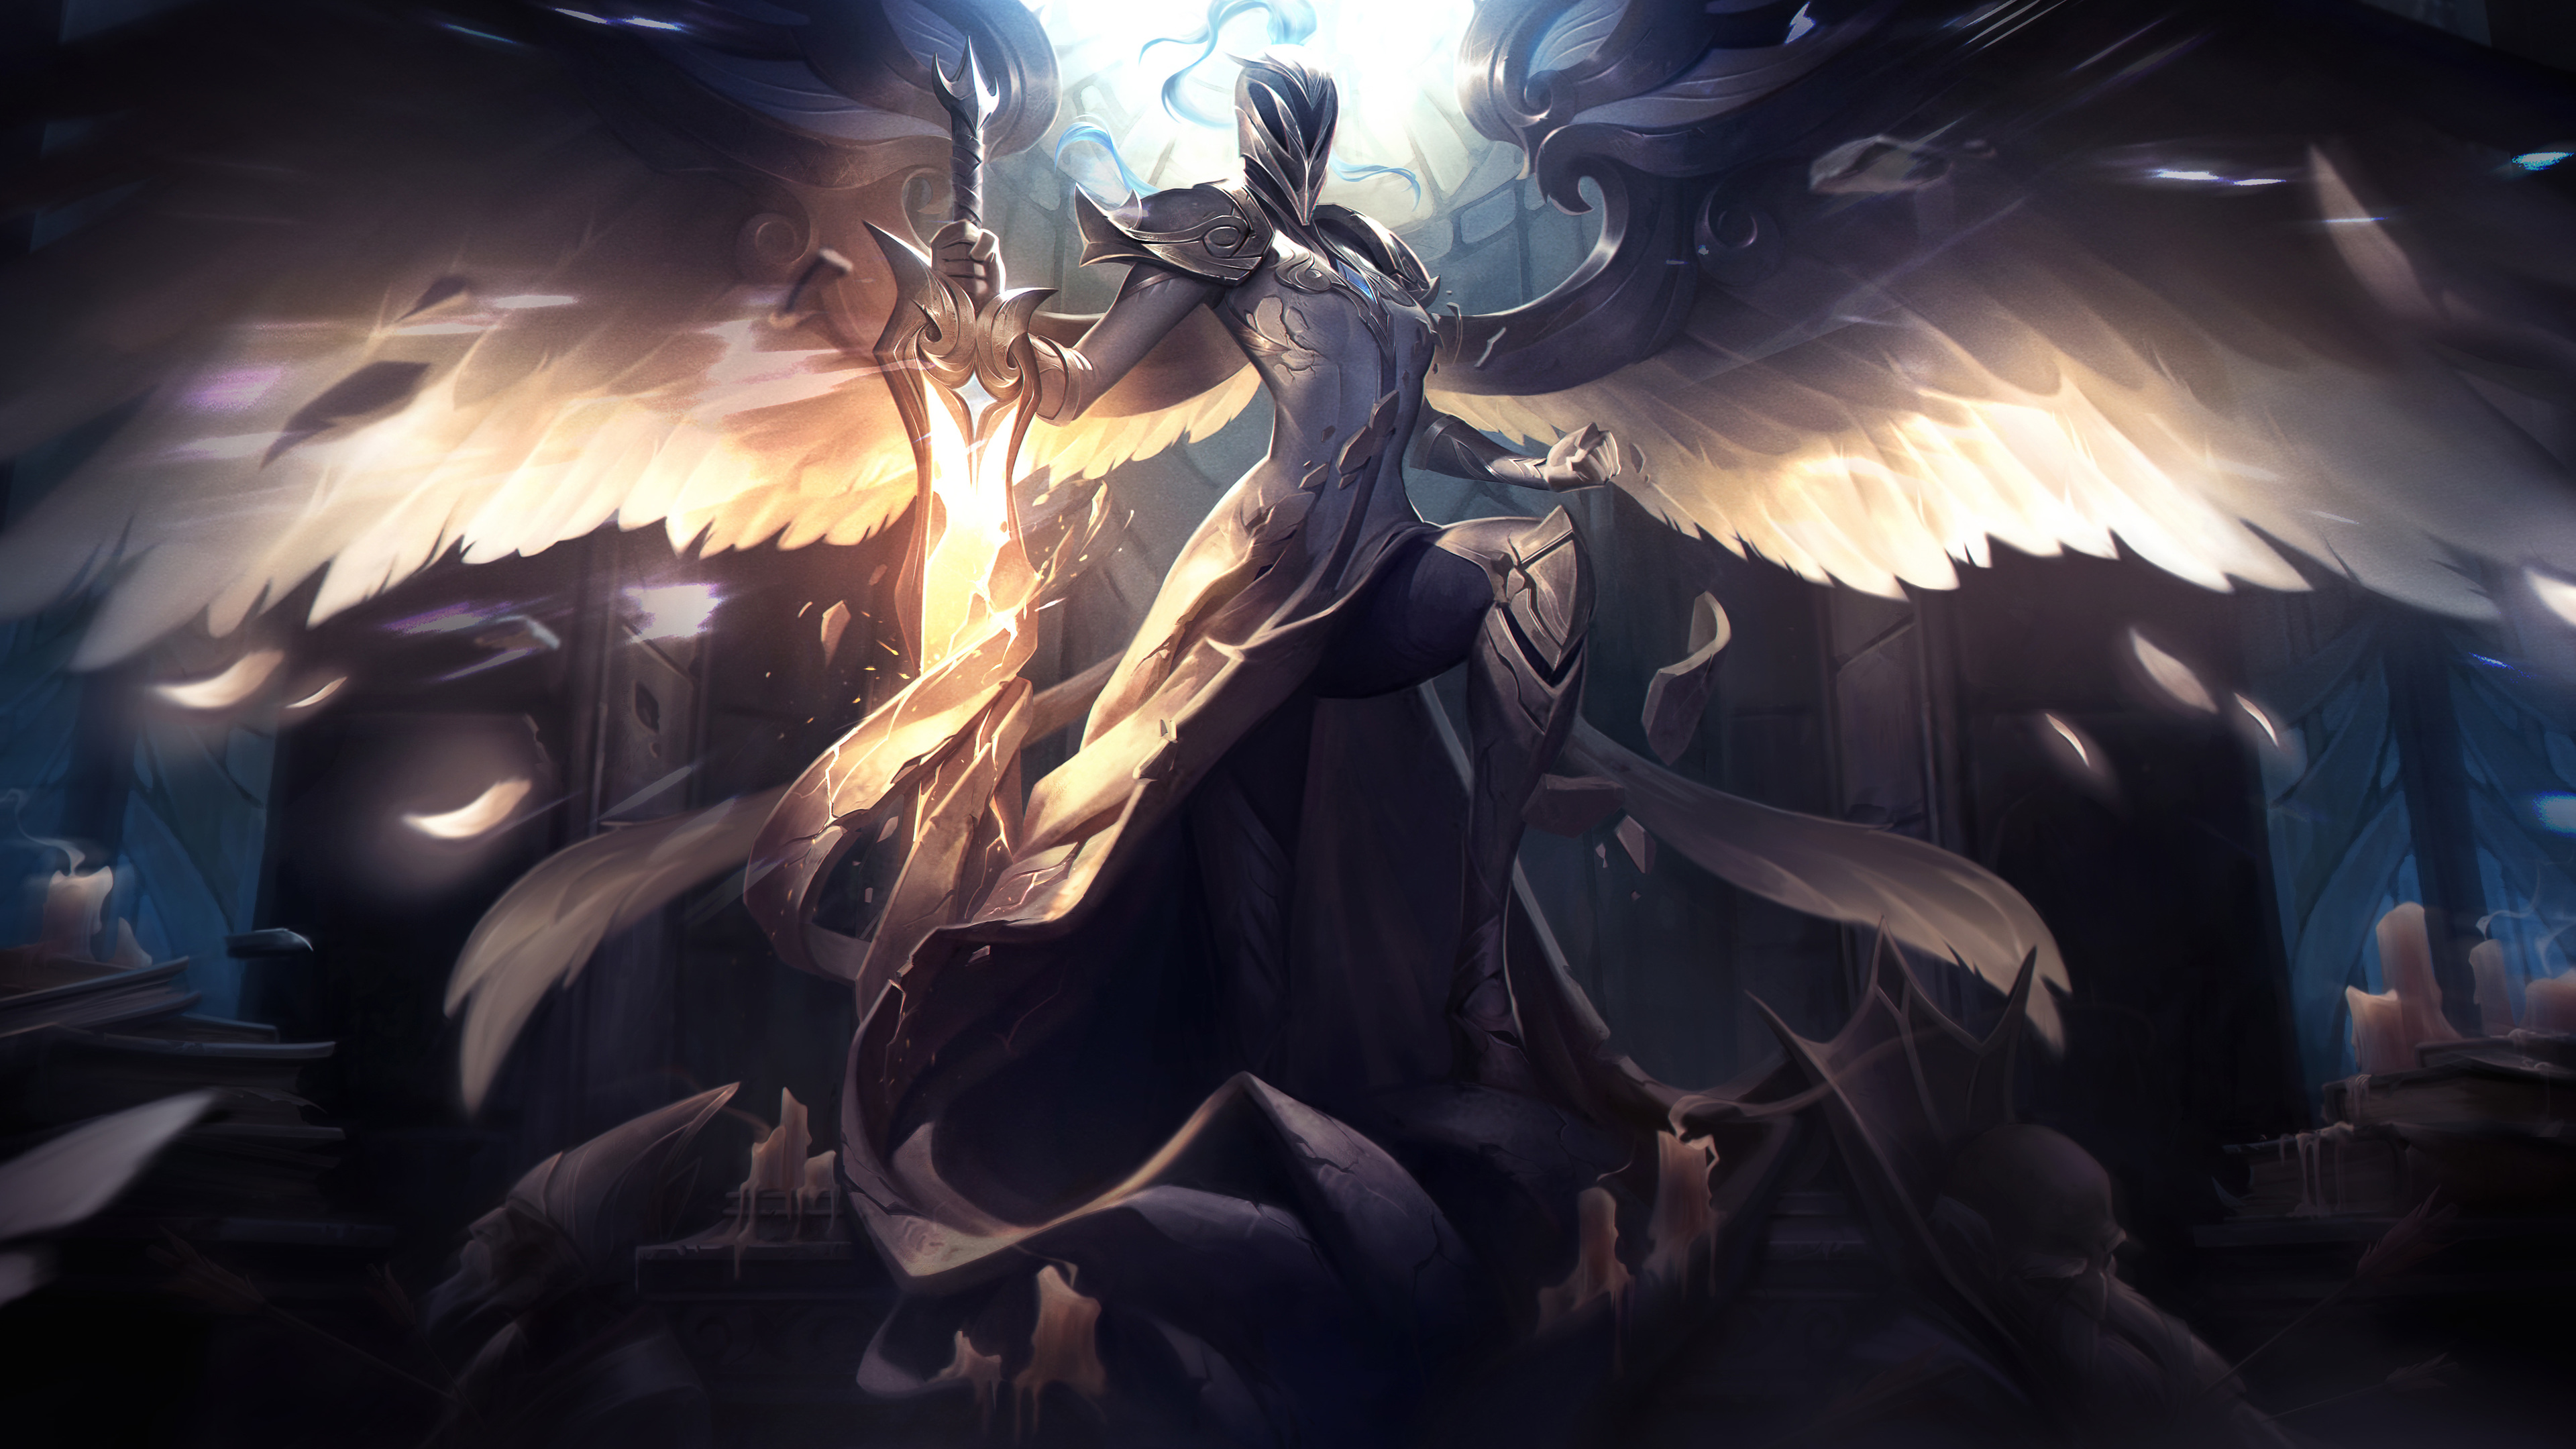 aether wing kayle league of legends 4k 1553074771 - Aether Wing Kayle League Of Legends 4k - league of legends wallpapers, hd-wallpapers, games wallpapers, 5k wallpapers, 4k-wallpapers